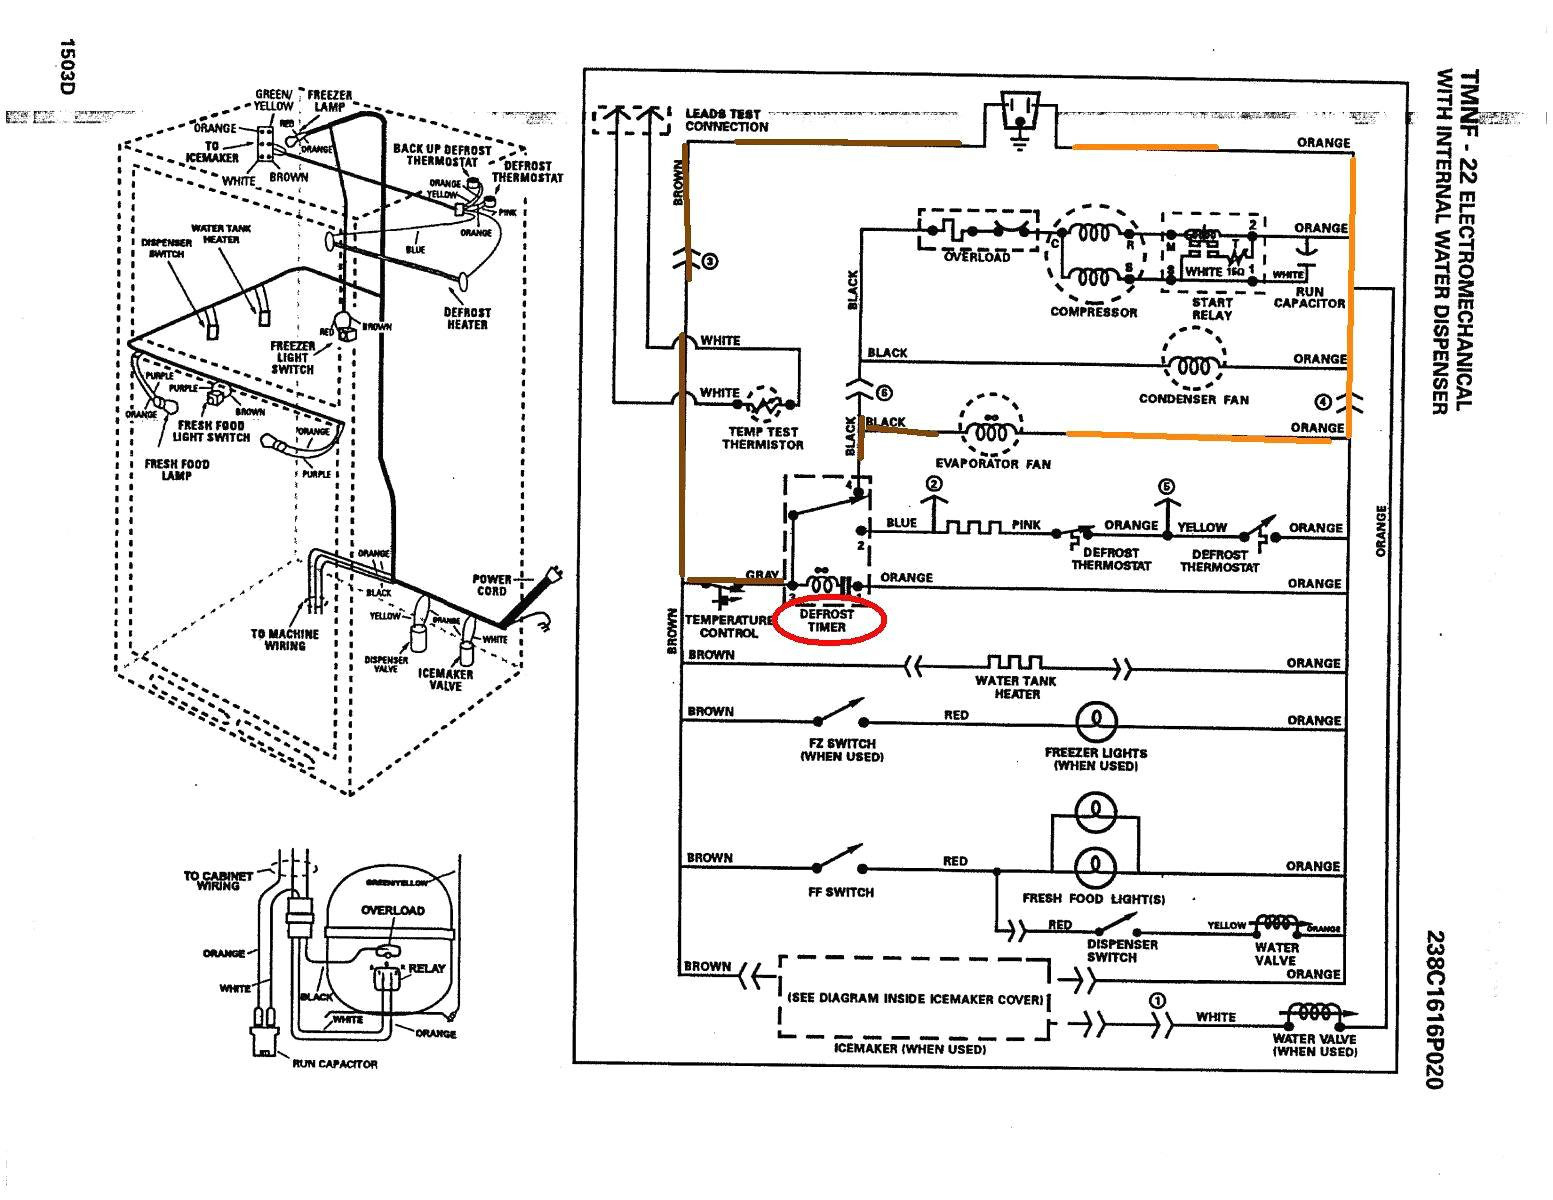 Ge Wiring Schematic Not Lossing Diagram Air Conditioner Relay Library Rh 73 Codingcommunity De Washer